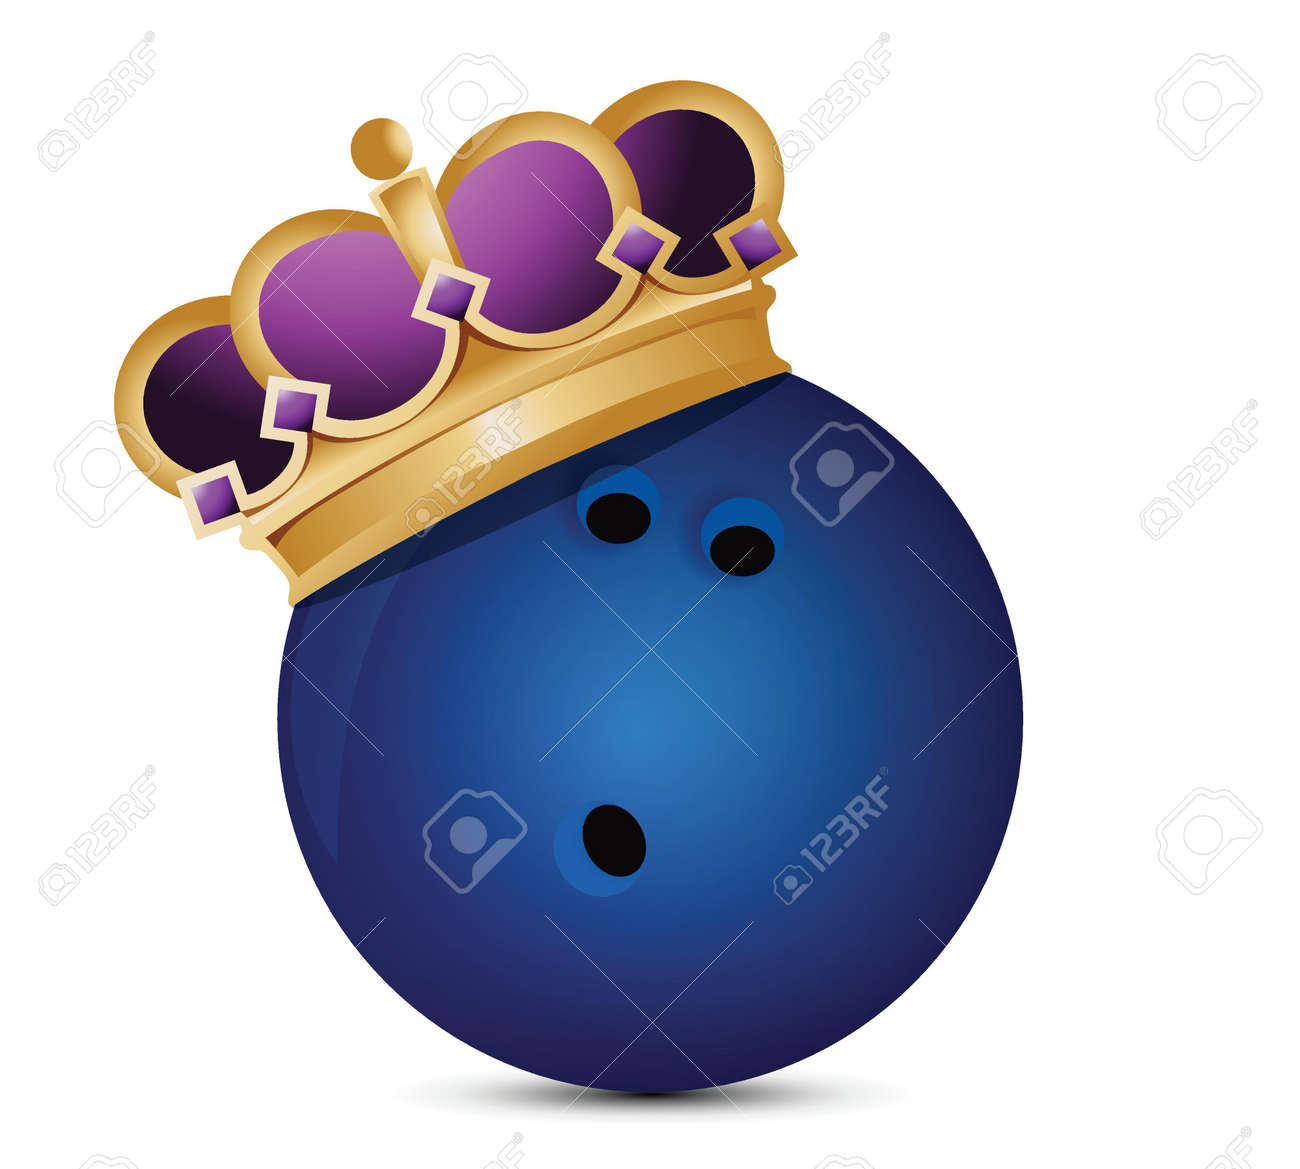 Bowling ball with a crown illustration design over a white background Stock Vector - 18487123